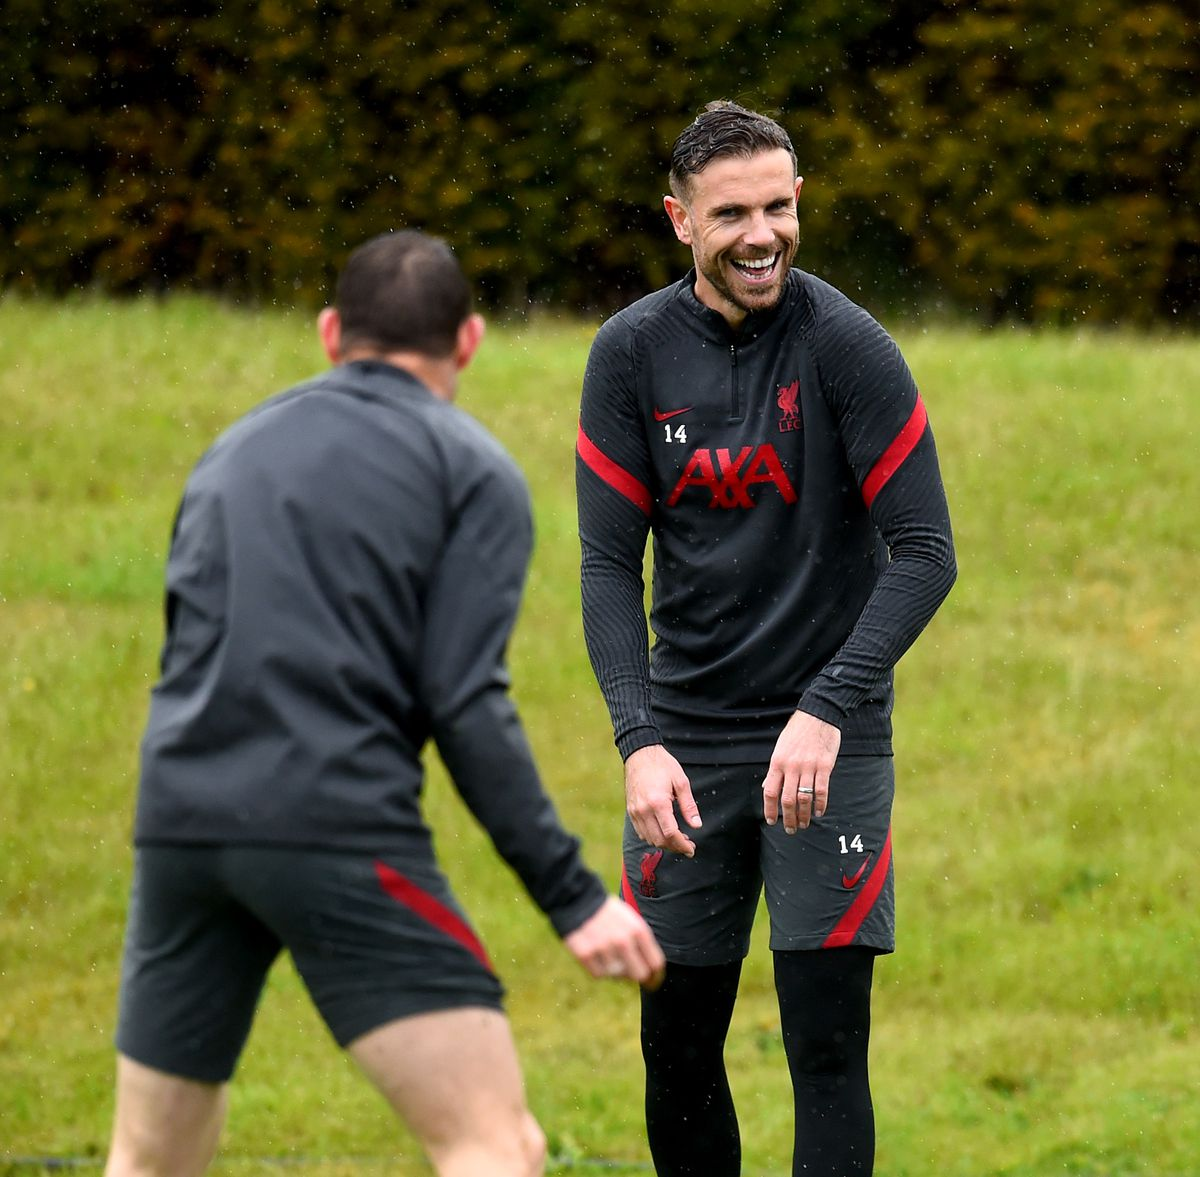 Henderson pictured laughing.